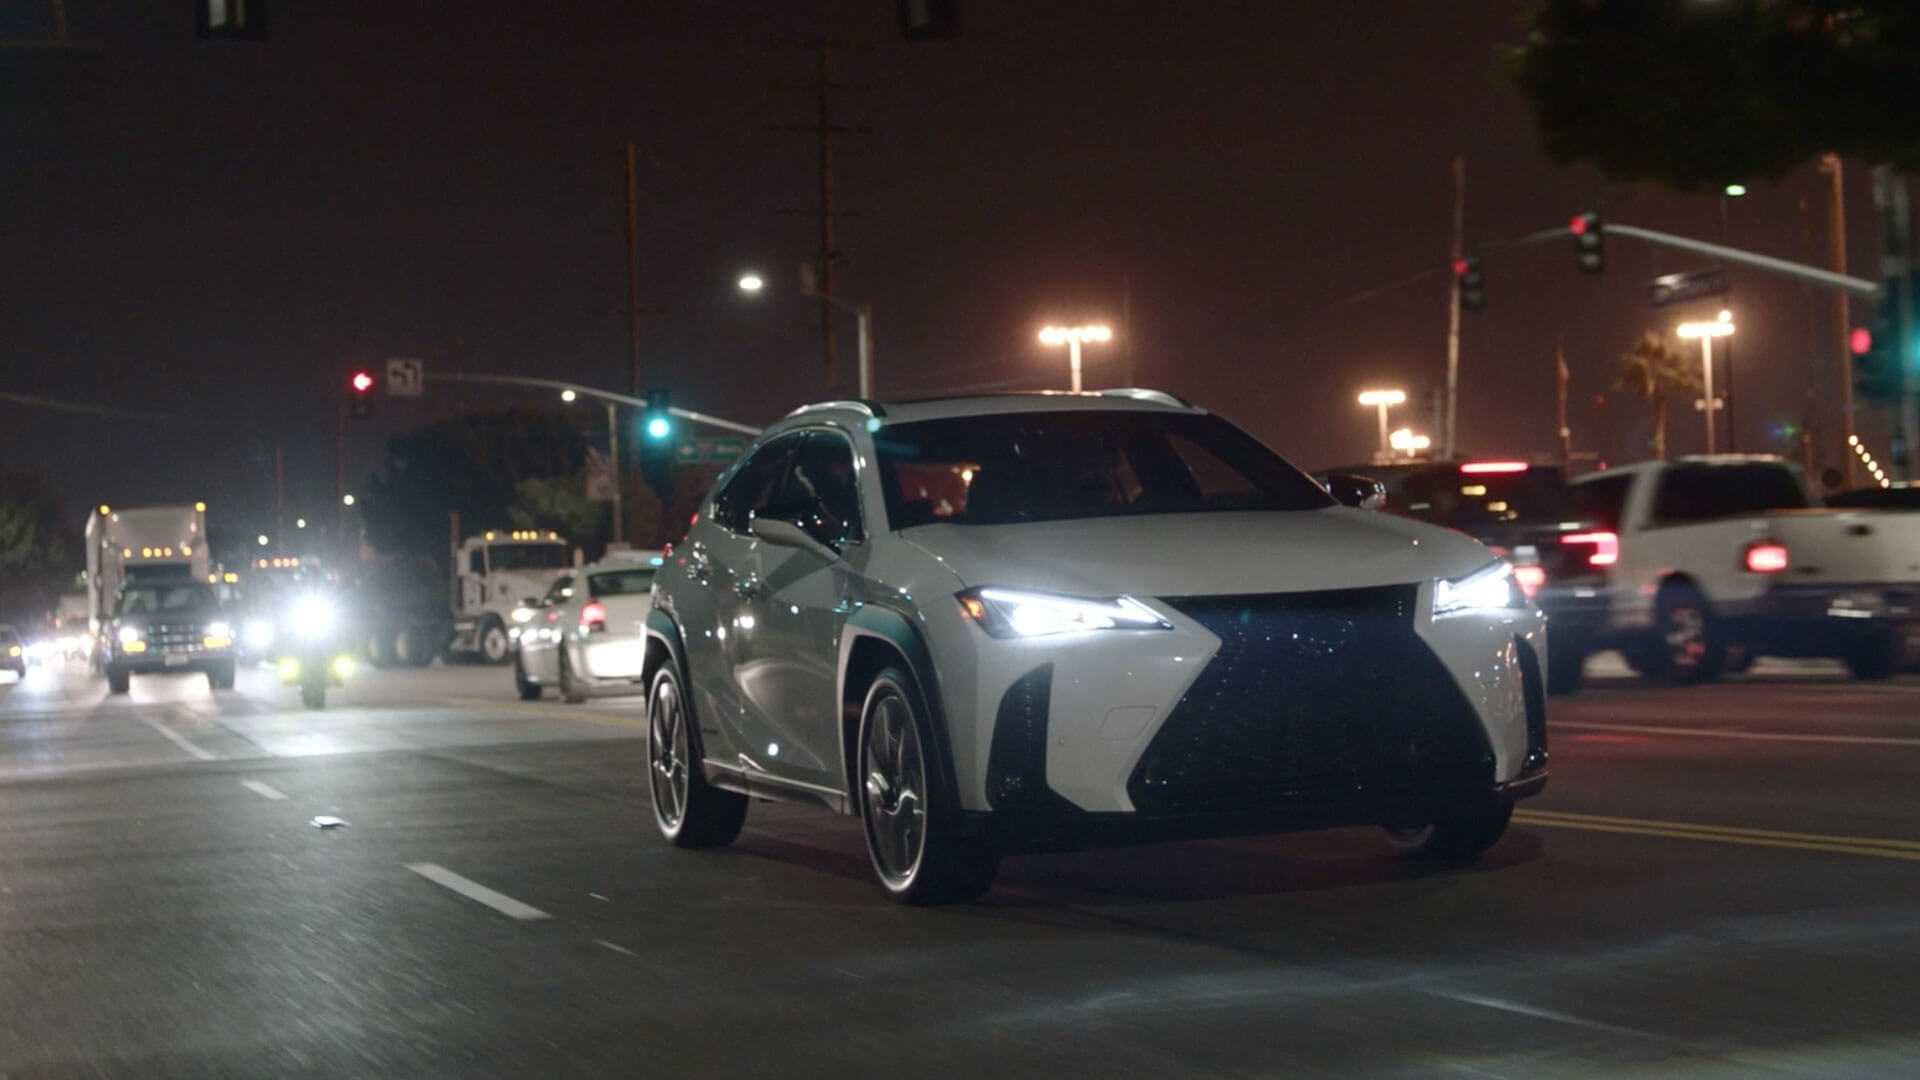 2019 lexus jit episode 3 ux gallery 07